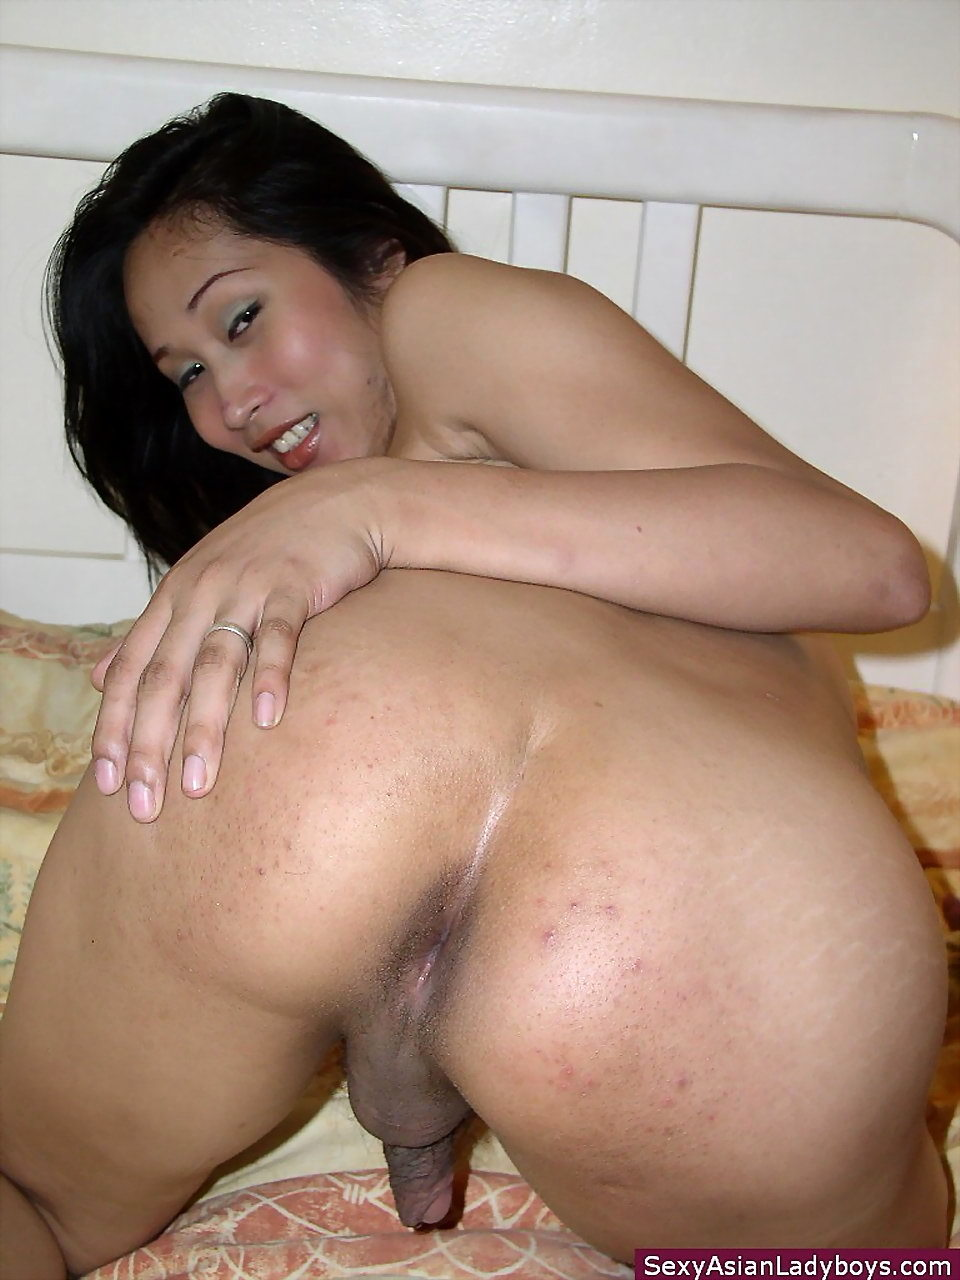 Shy Thai Tranny Offering Her Tight Brown Orifice